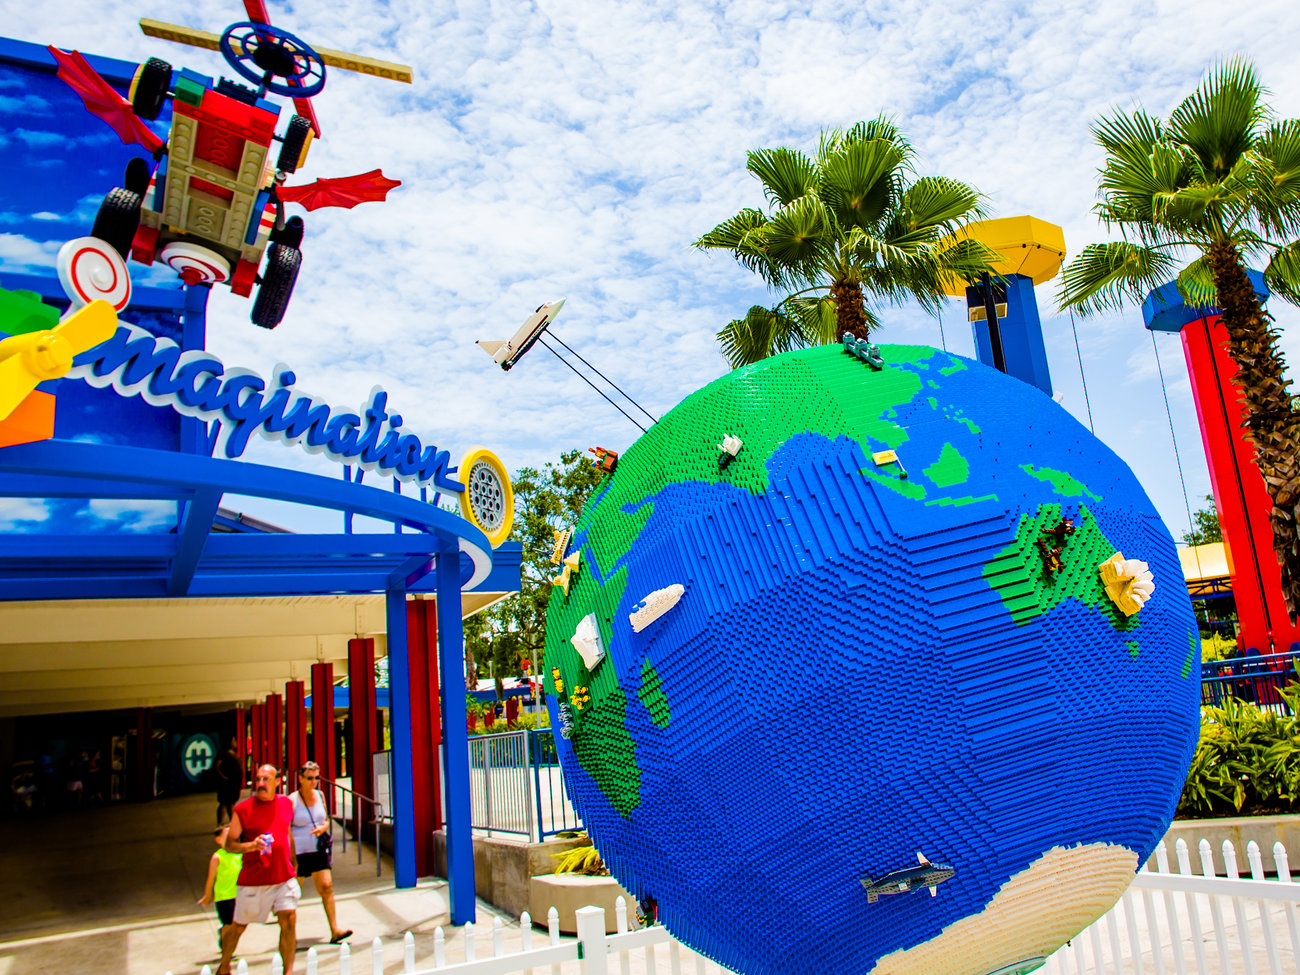 Legoland Florida Resort in Orlando